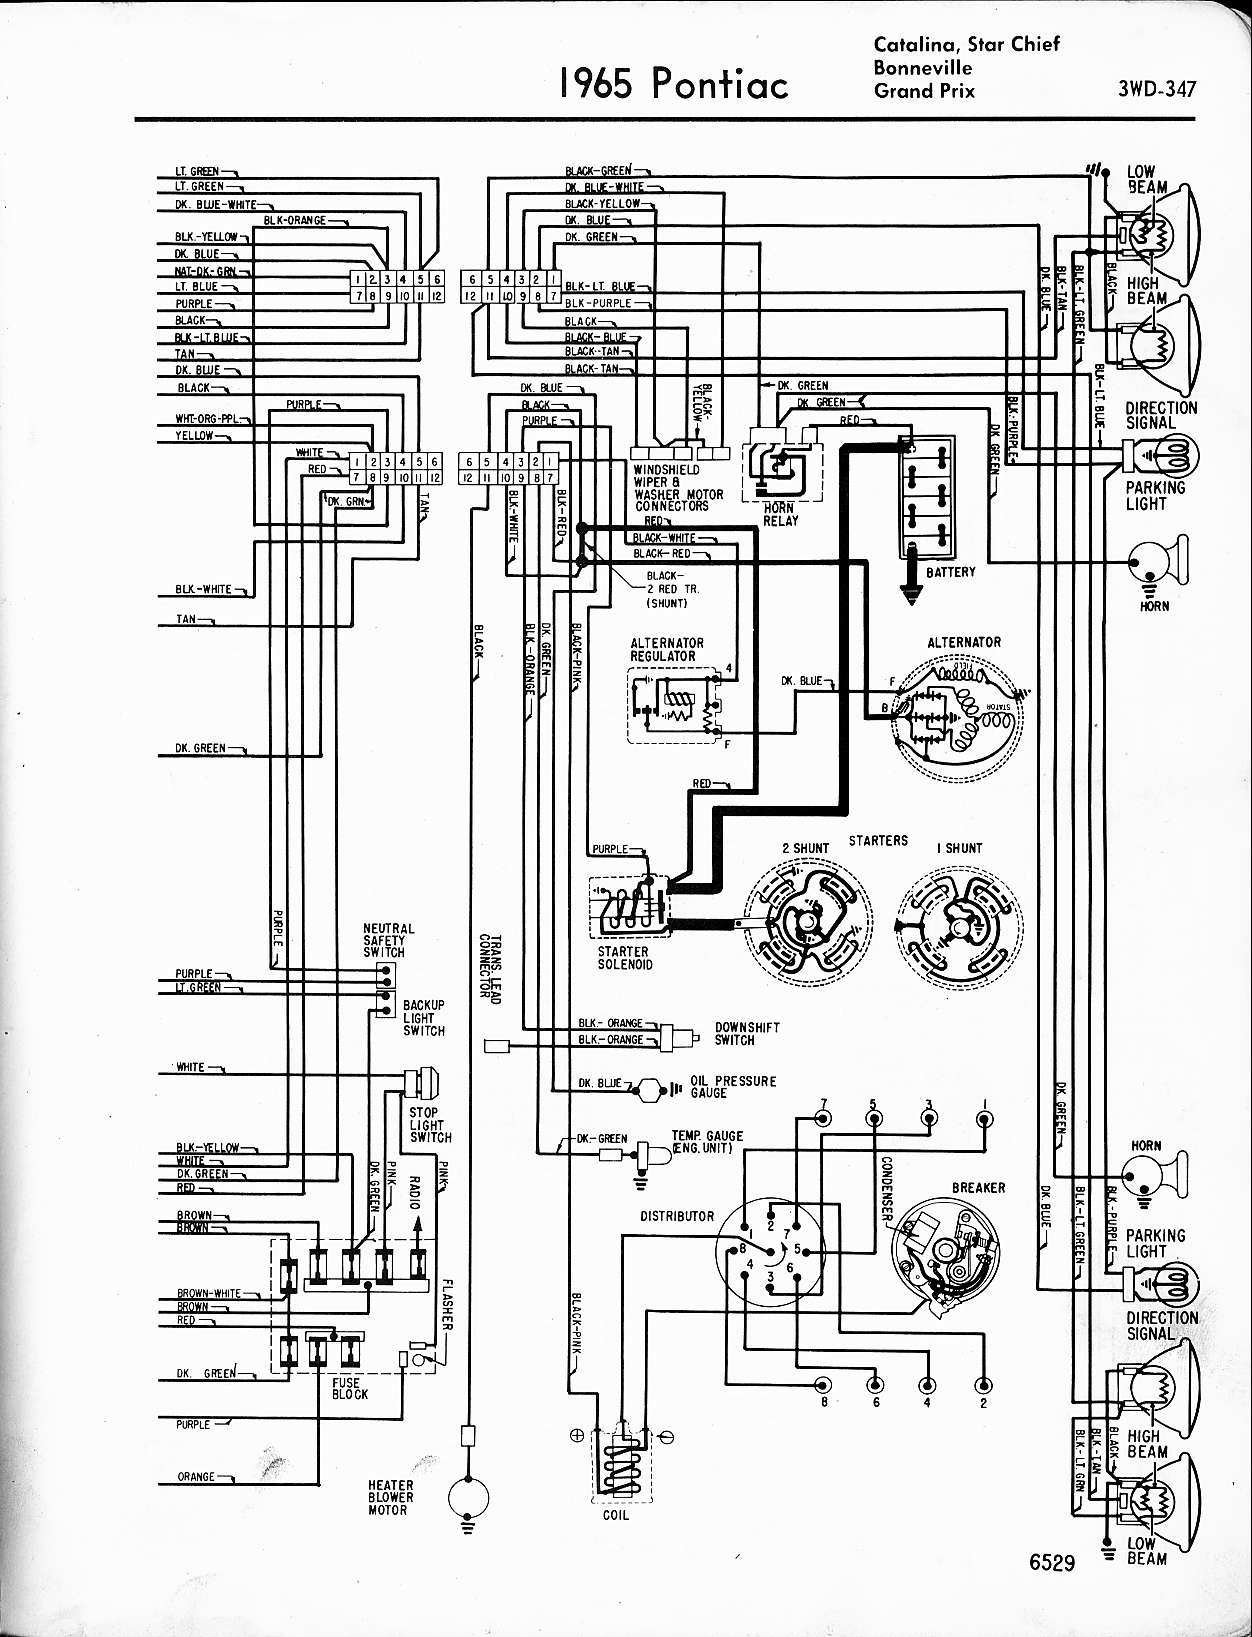 2000 Bonneville Wiring Diagrams Free Download Wiring